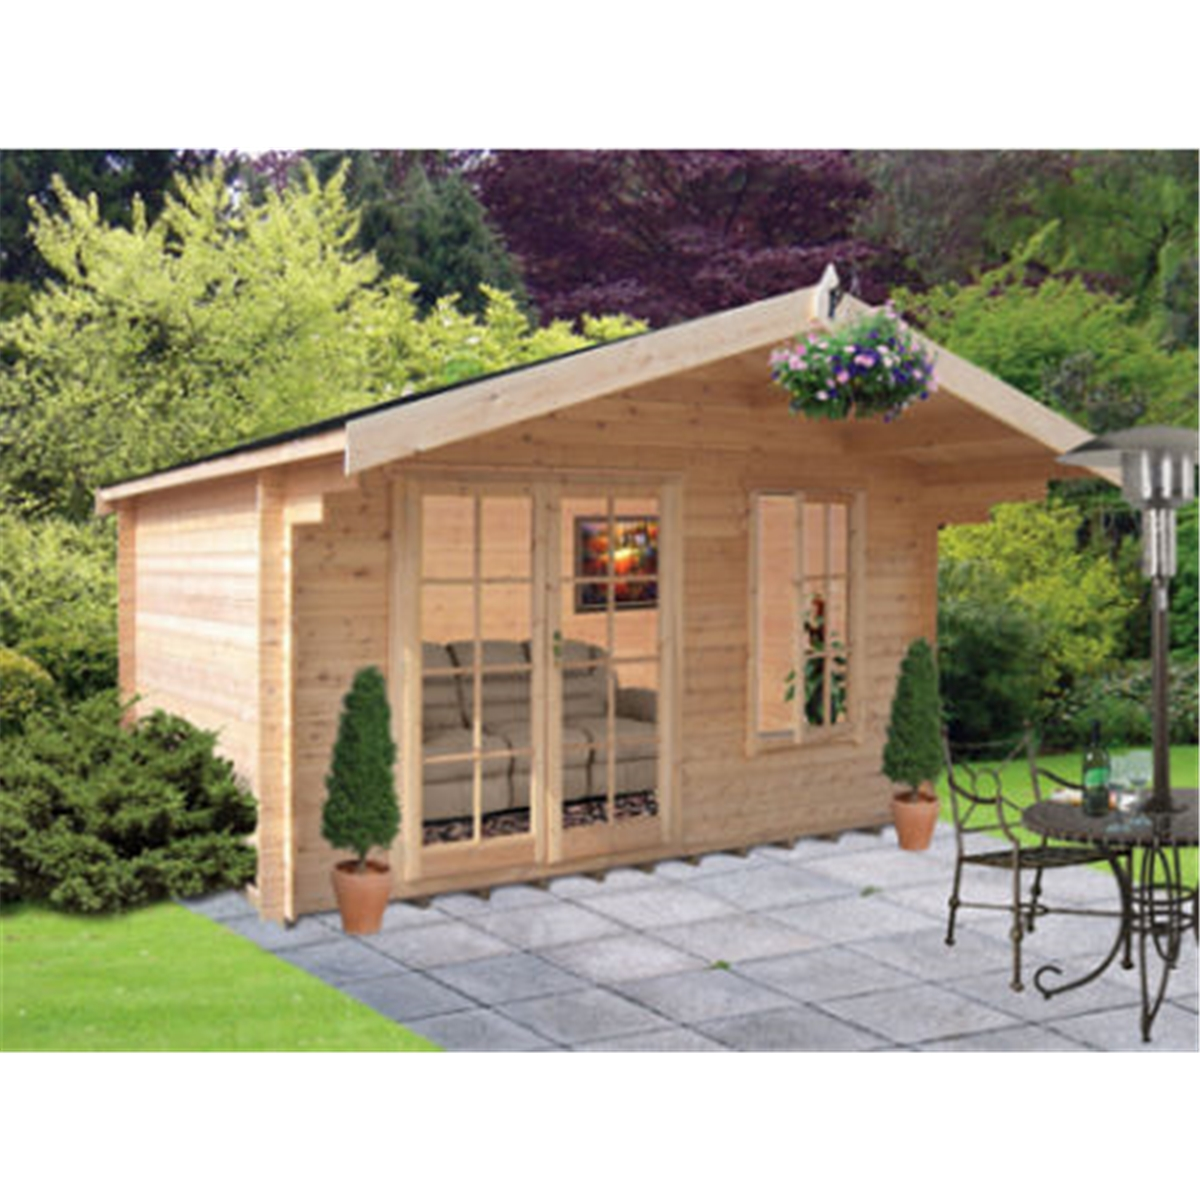 Garden Houses & Buildings 2.99m x 2.99m Log Cabin With Fully Glazed Double Doors - 28mm Wall Thickness